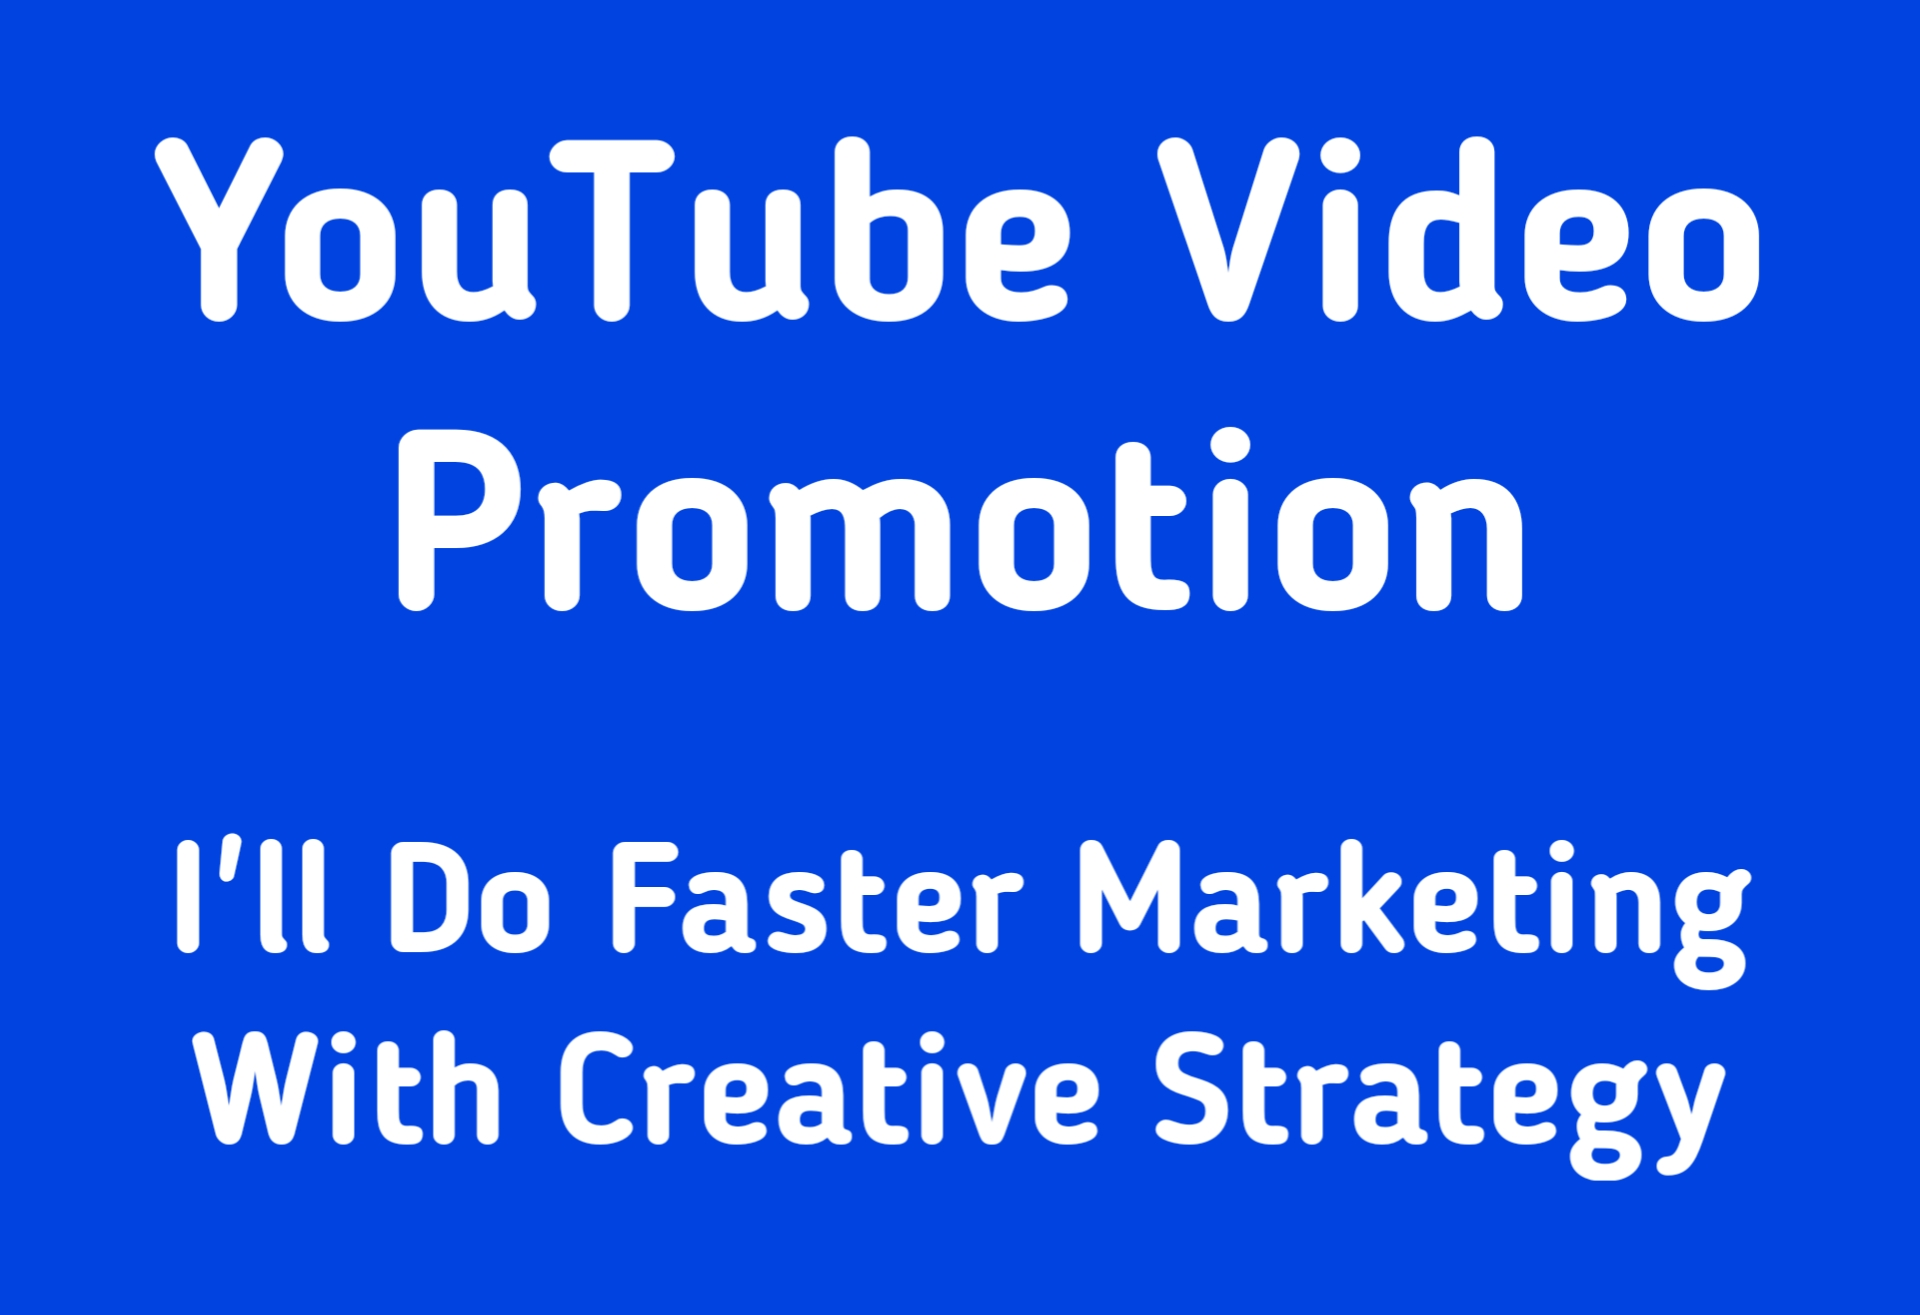 I'll Do Creative Youtube Video Promotion Marketing With Strategy